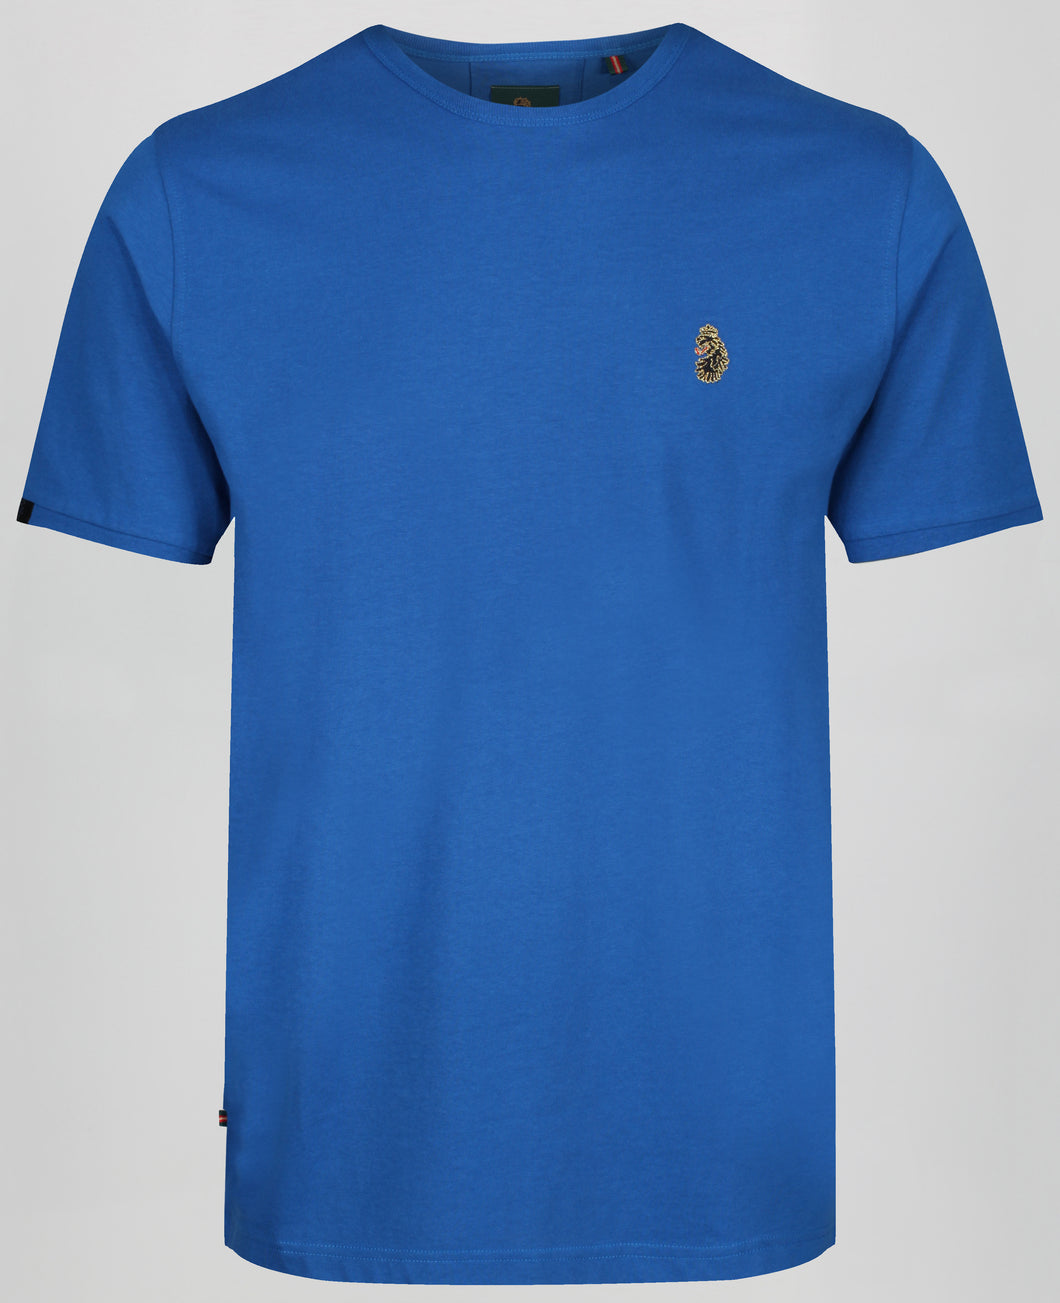 Luke 1977 Traff T-Shirt Blue